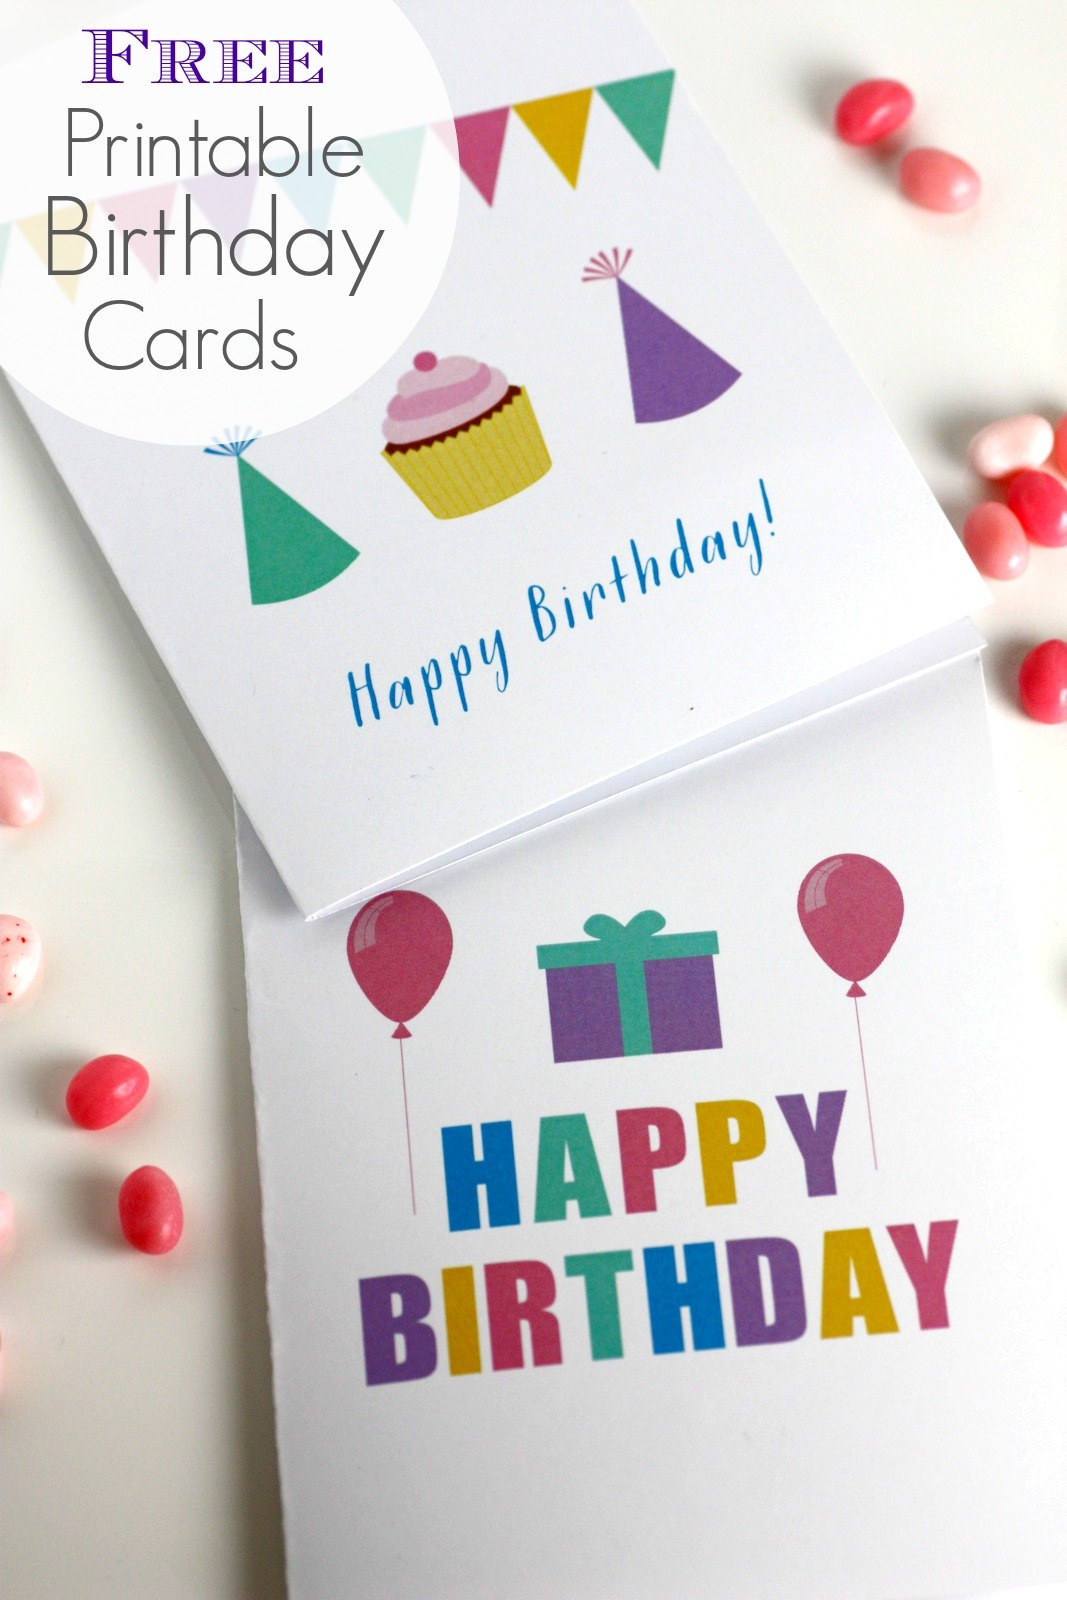 Free Printable Blank Birthday Cards | Catch My Party - Free Printable Bday Cards